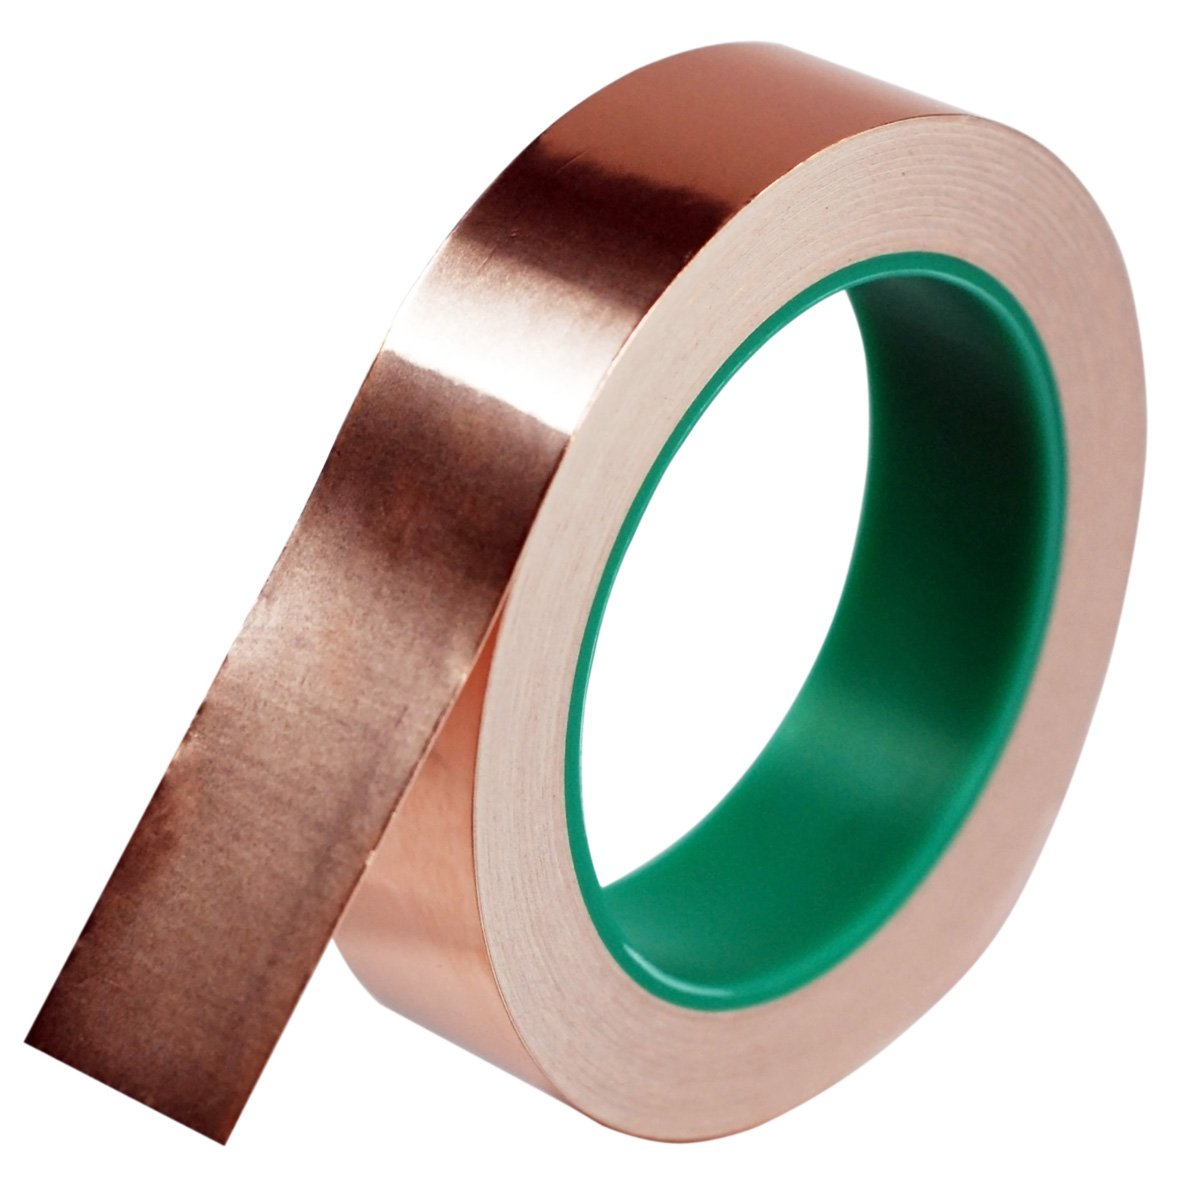 Copper Foil Tape,DIKOO Double-sided Conductive Adhesive (1inch X 21.8yards) for EMI Shielding,Slug Repellent,Electrical Repairs,Stained Glass,Art Work,Soldering,Grounding Paper Circuits,Crafts